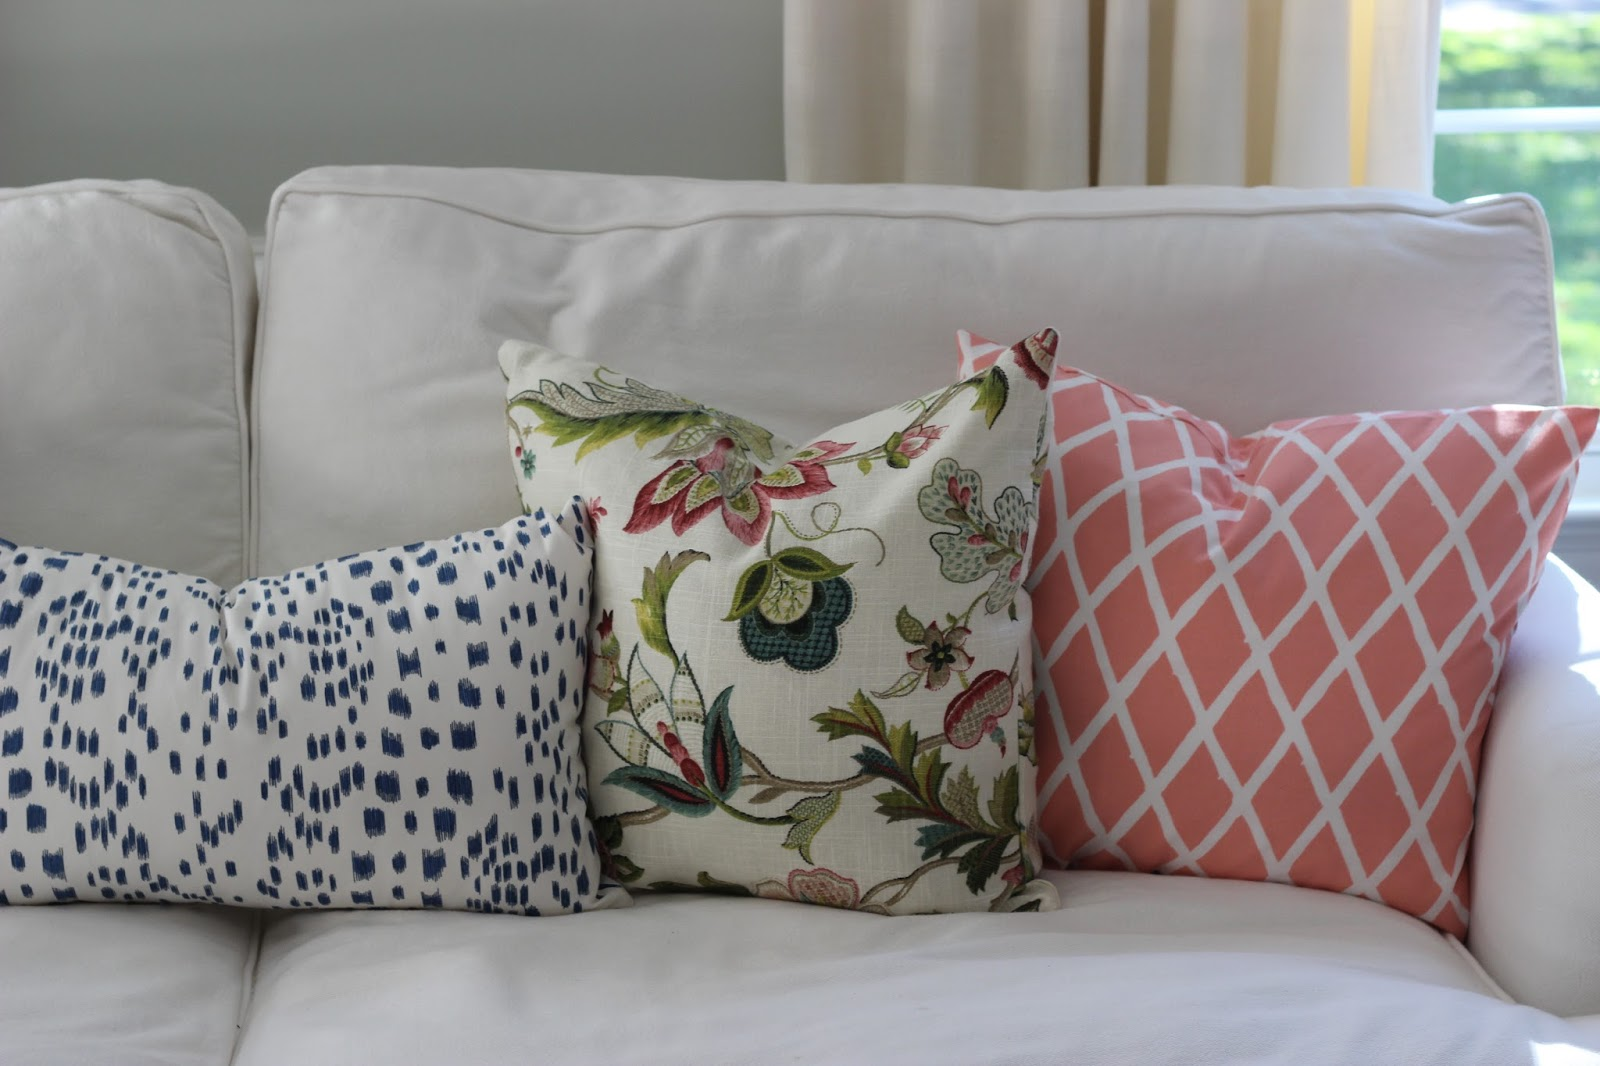 I Also Like To Mix Up My Scales And Patterns For A Well Rounded Look, As  Seen Below. How Do You Choose When Deciding On Throw Pillows?